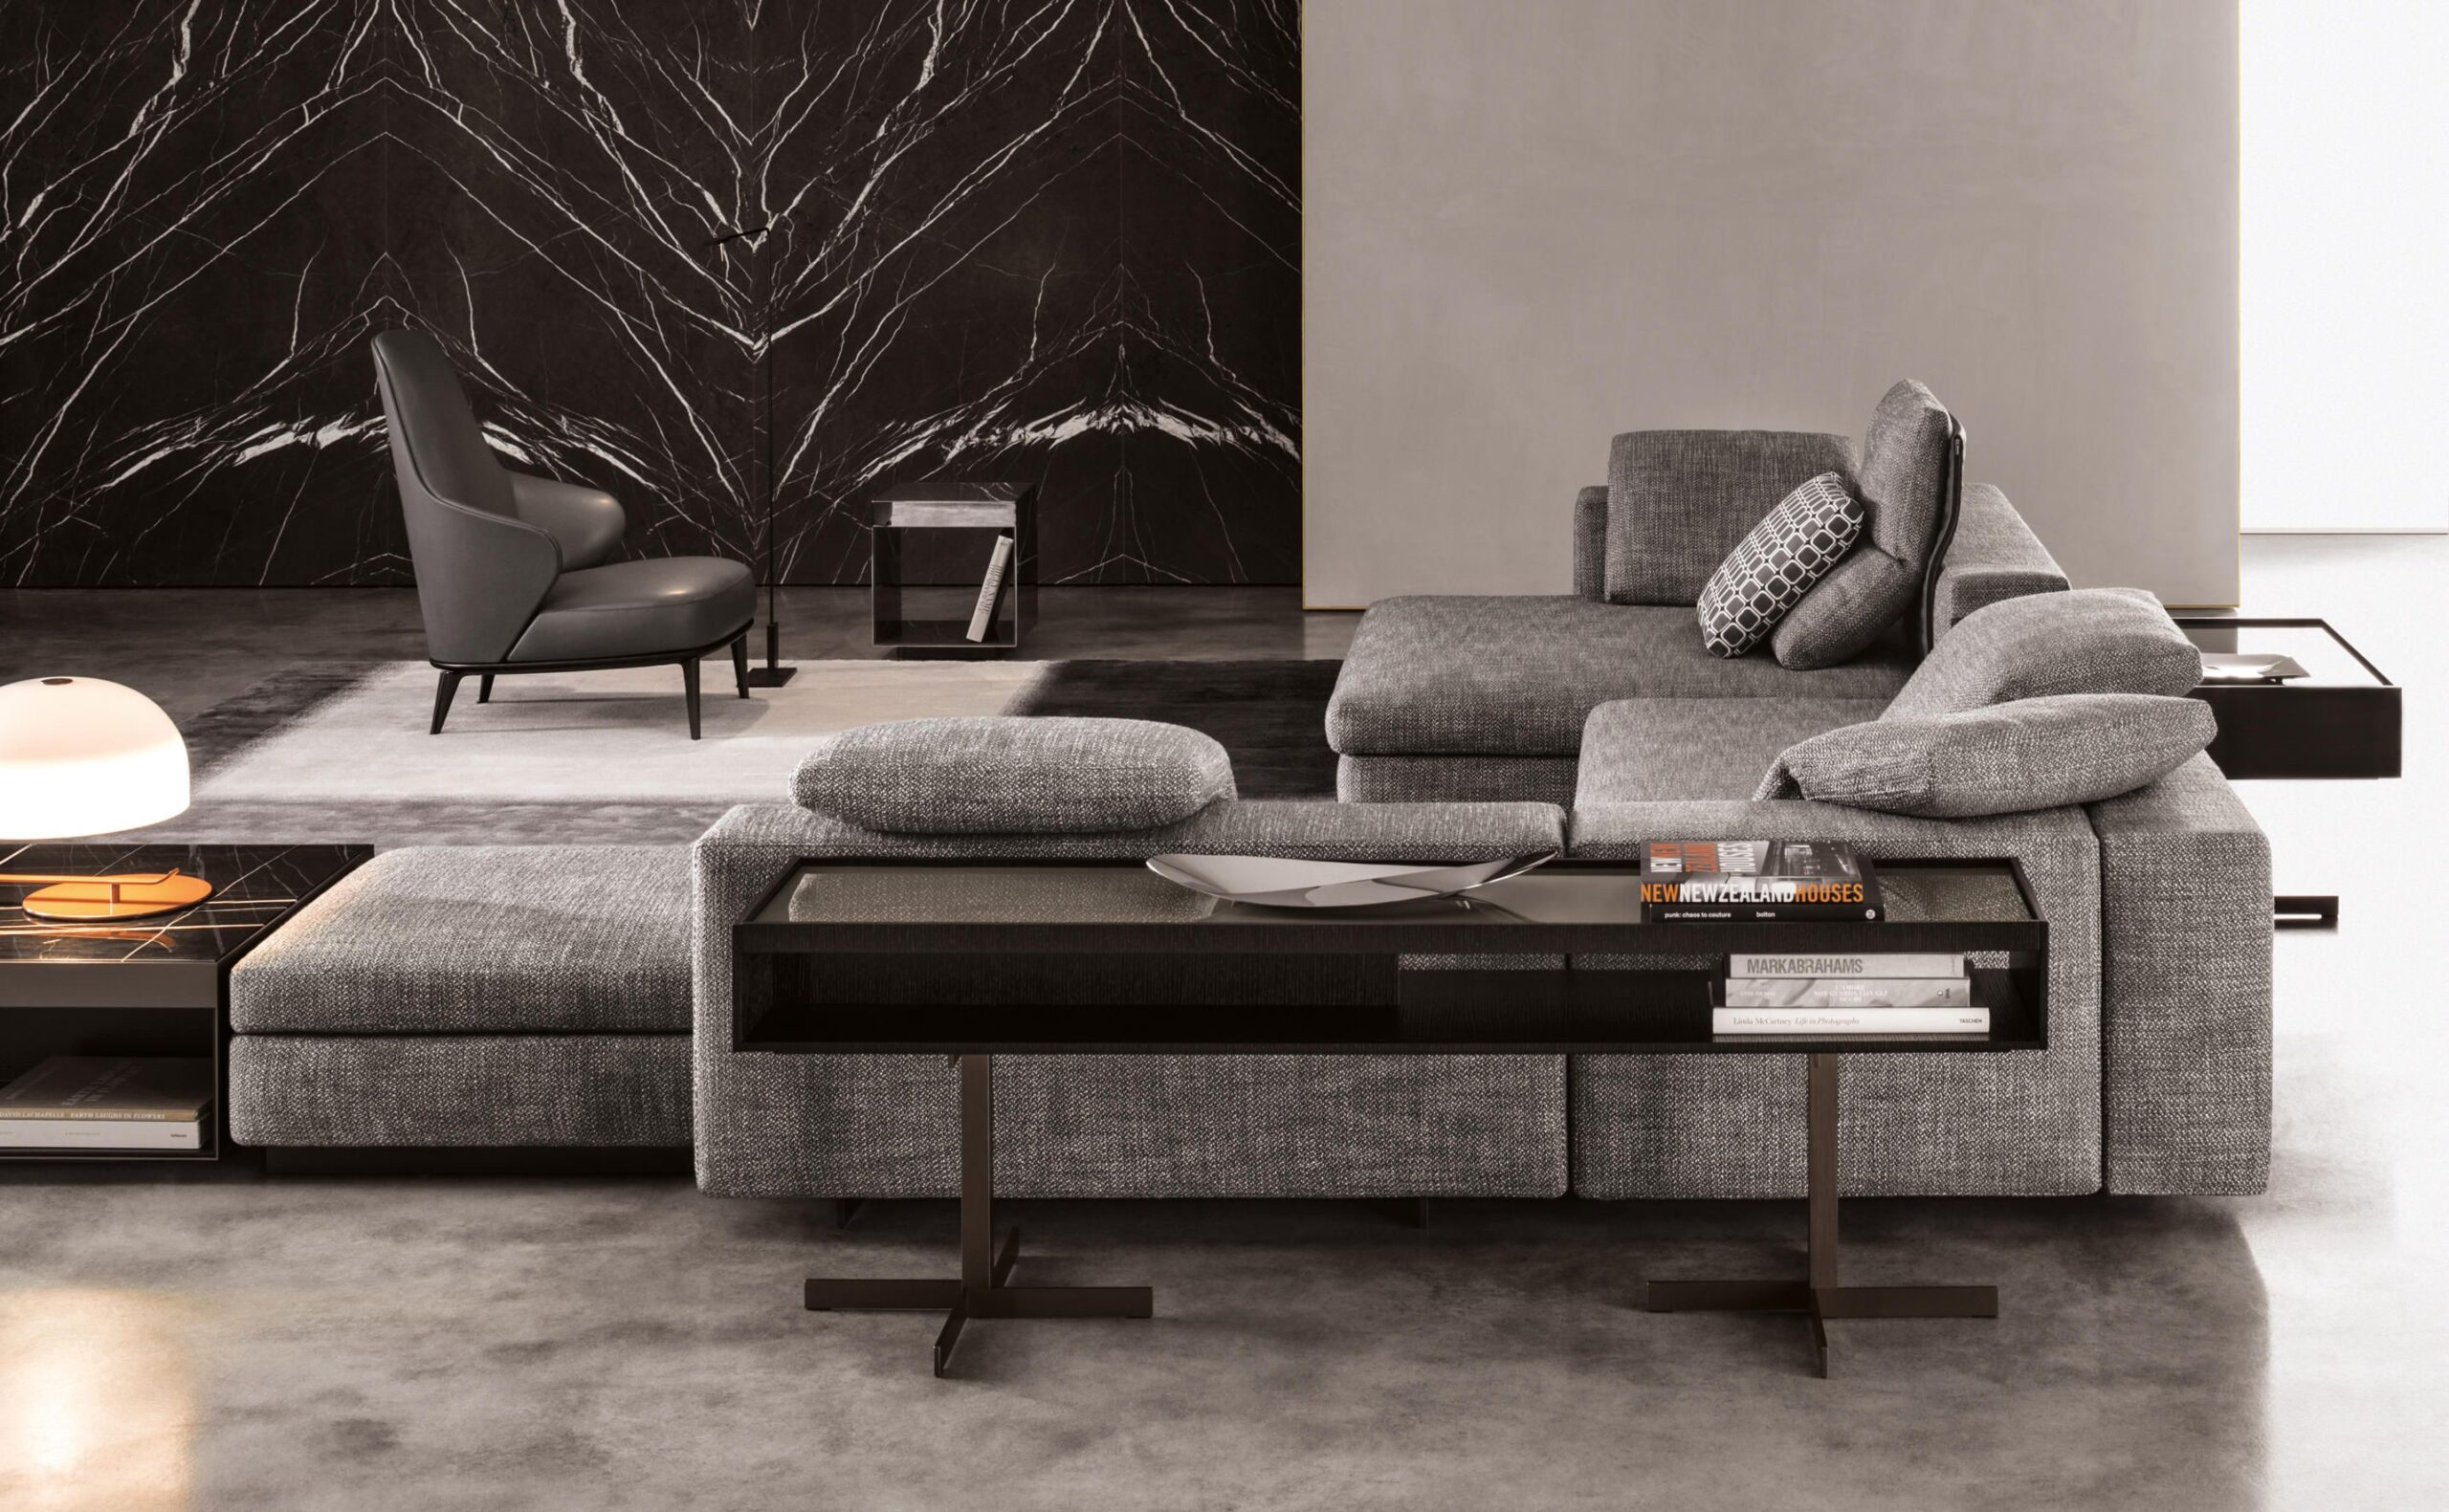 Full Size of Minotti Sofa Bed Freeman Seating System Outlet Alexander Size Preise Hay Mags Mit Elektrischer Sitztiefenverstellung Big Grau Tom Tailor Freistil Sofa Minotti Sofa